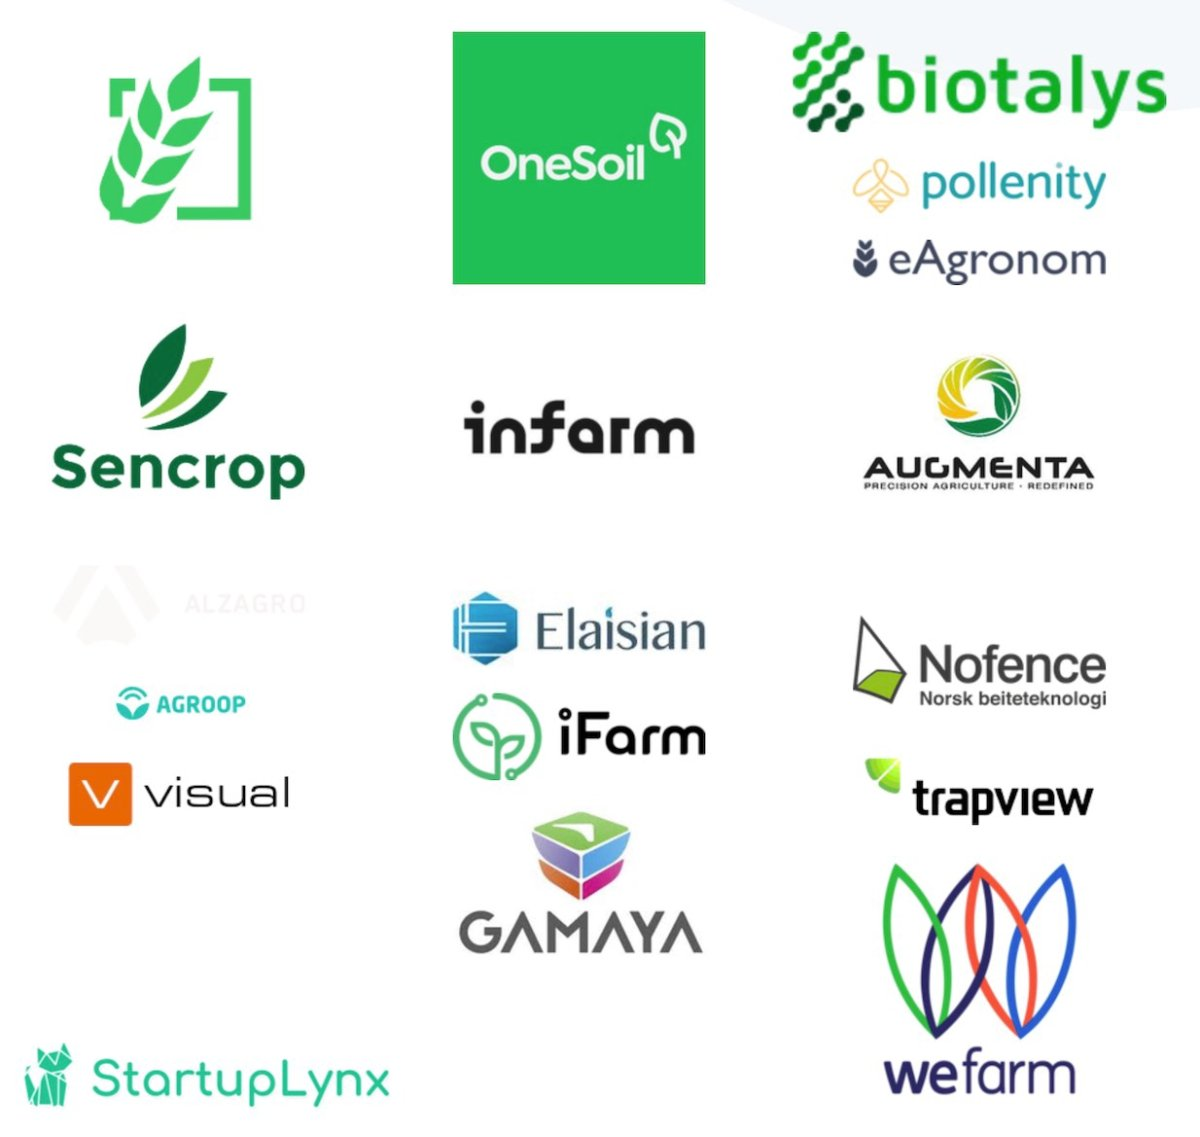 Top European startups in the field of future food production and technology for farmes in Agtech